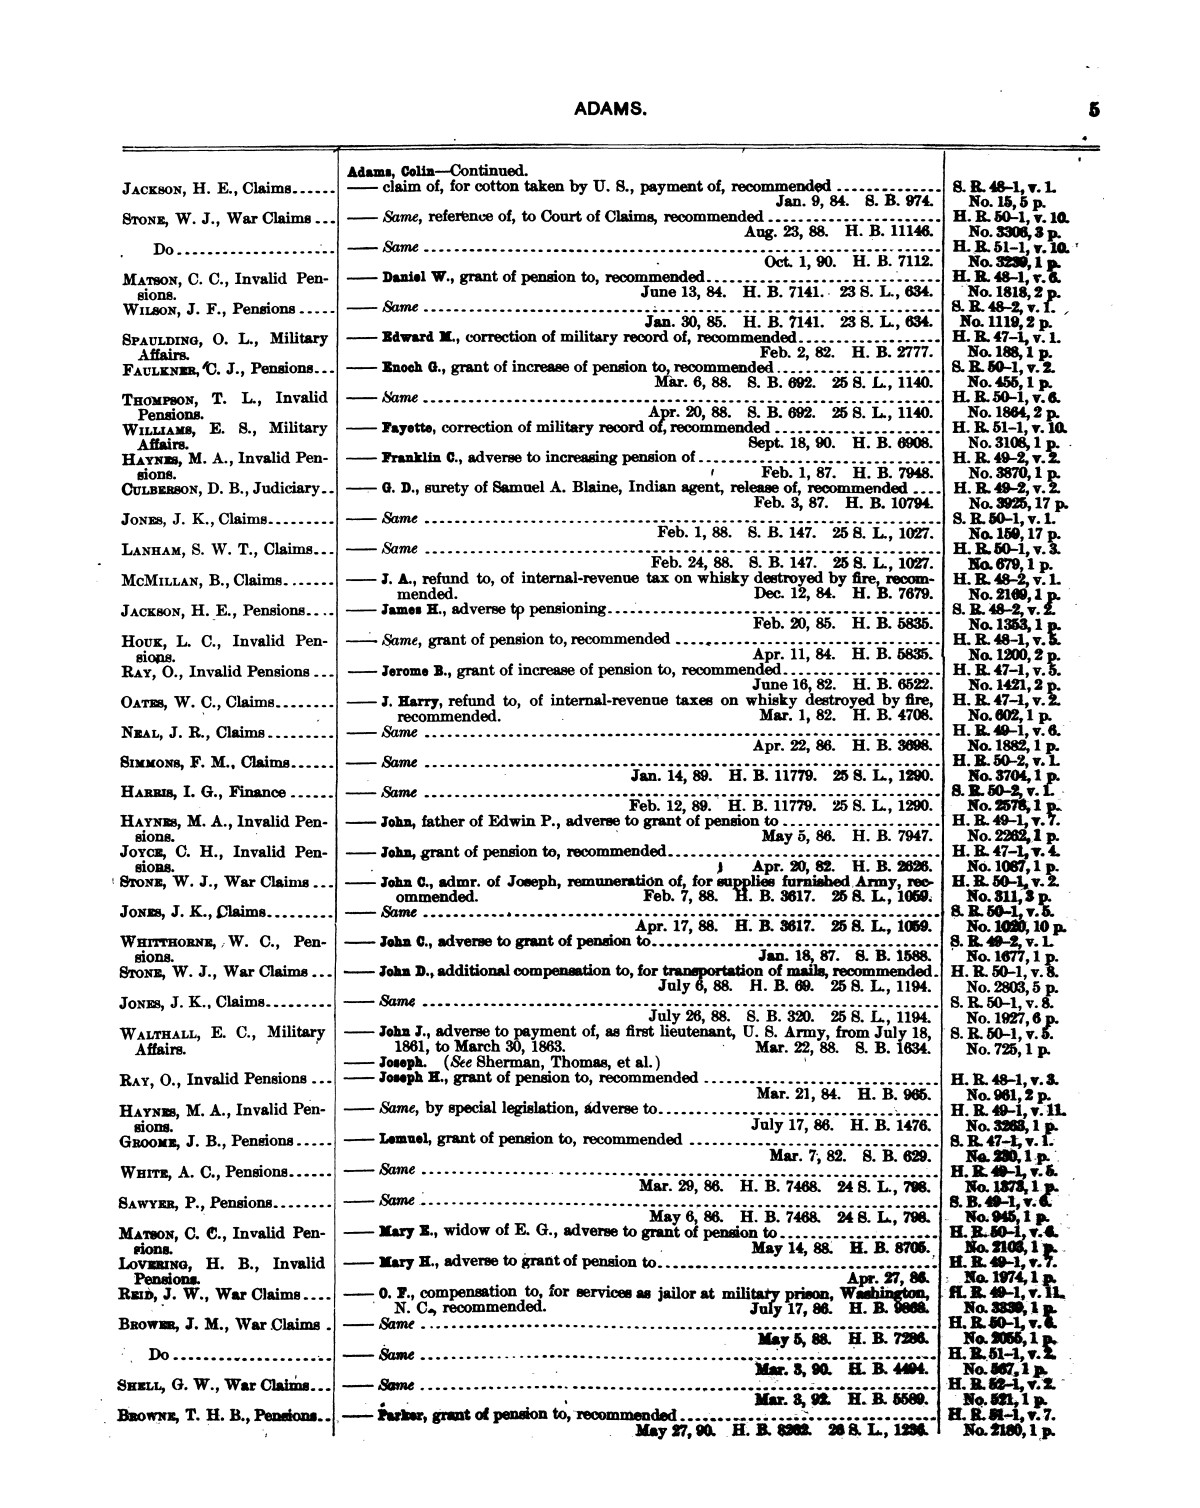 Comprehensive Index to the Publications of the United States Government, 1881-1893, Vol. 1.                                                                                                      5